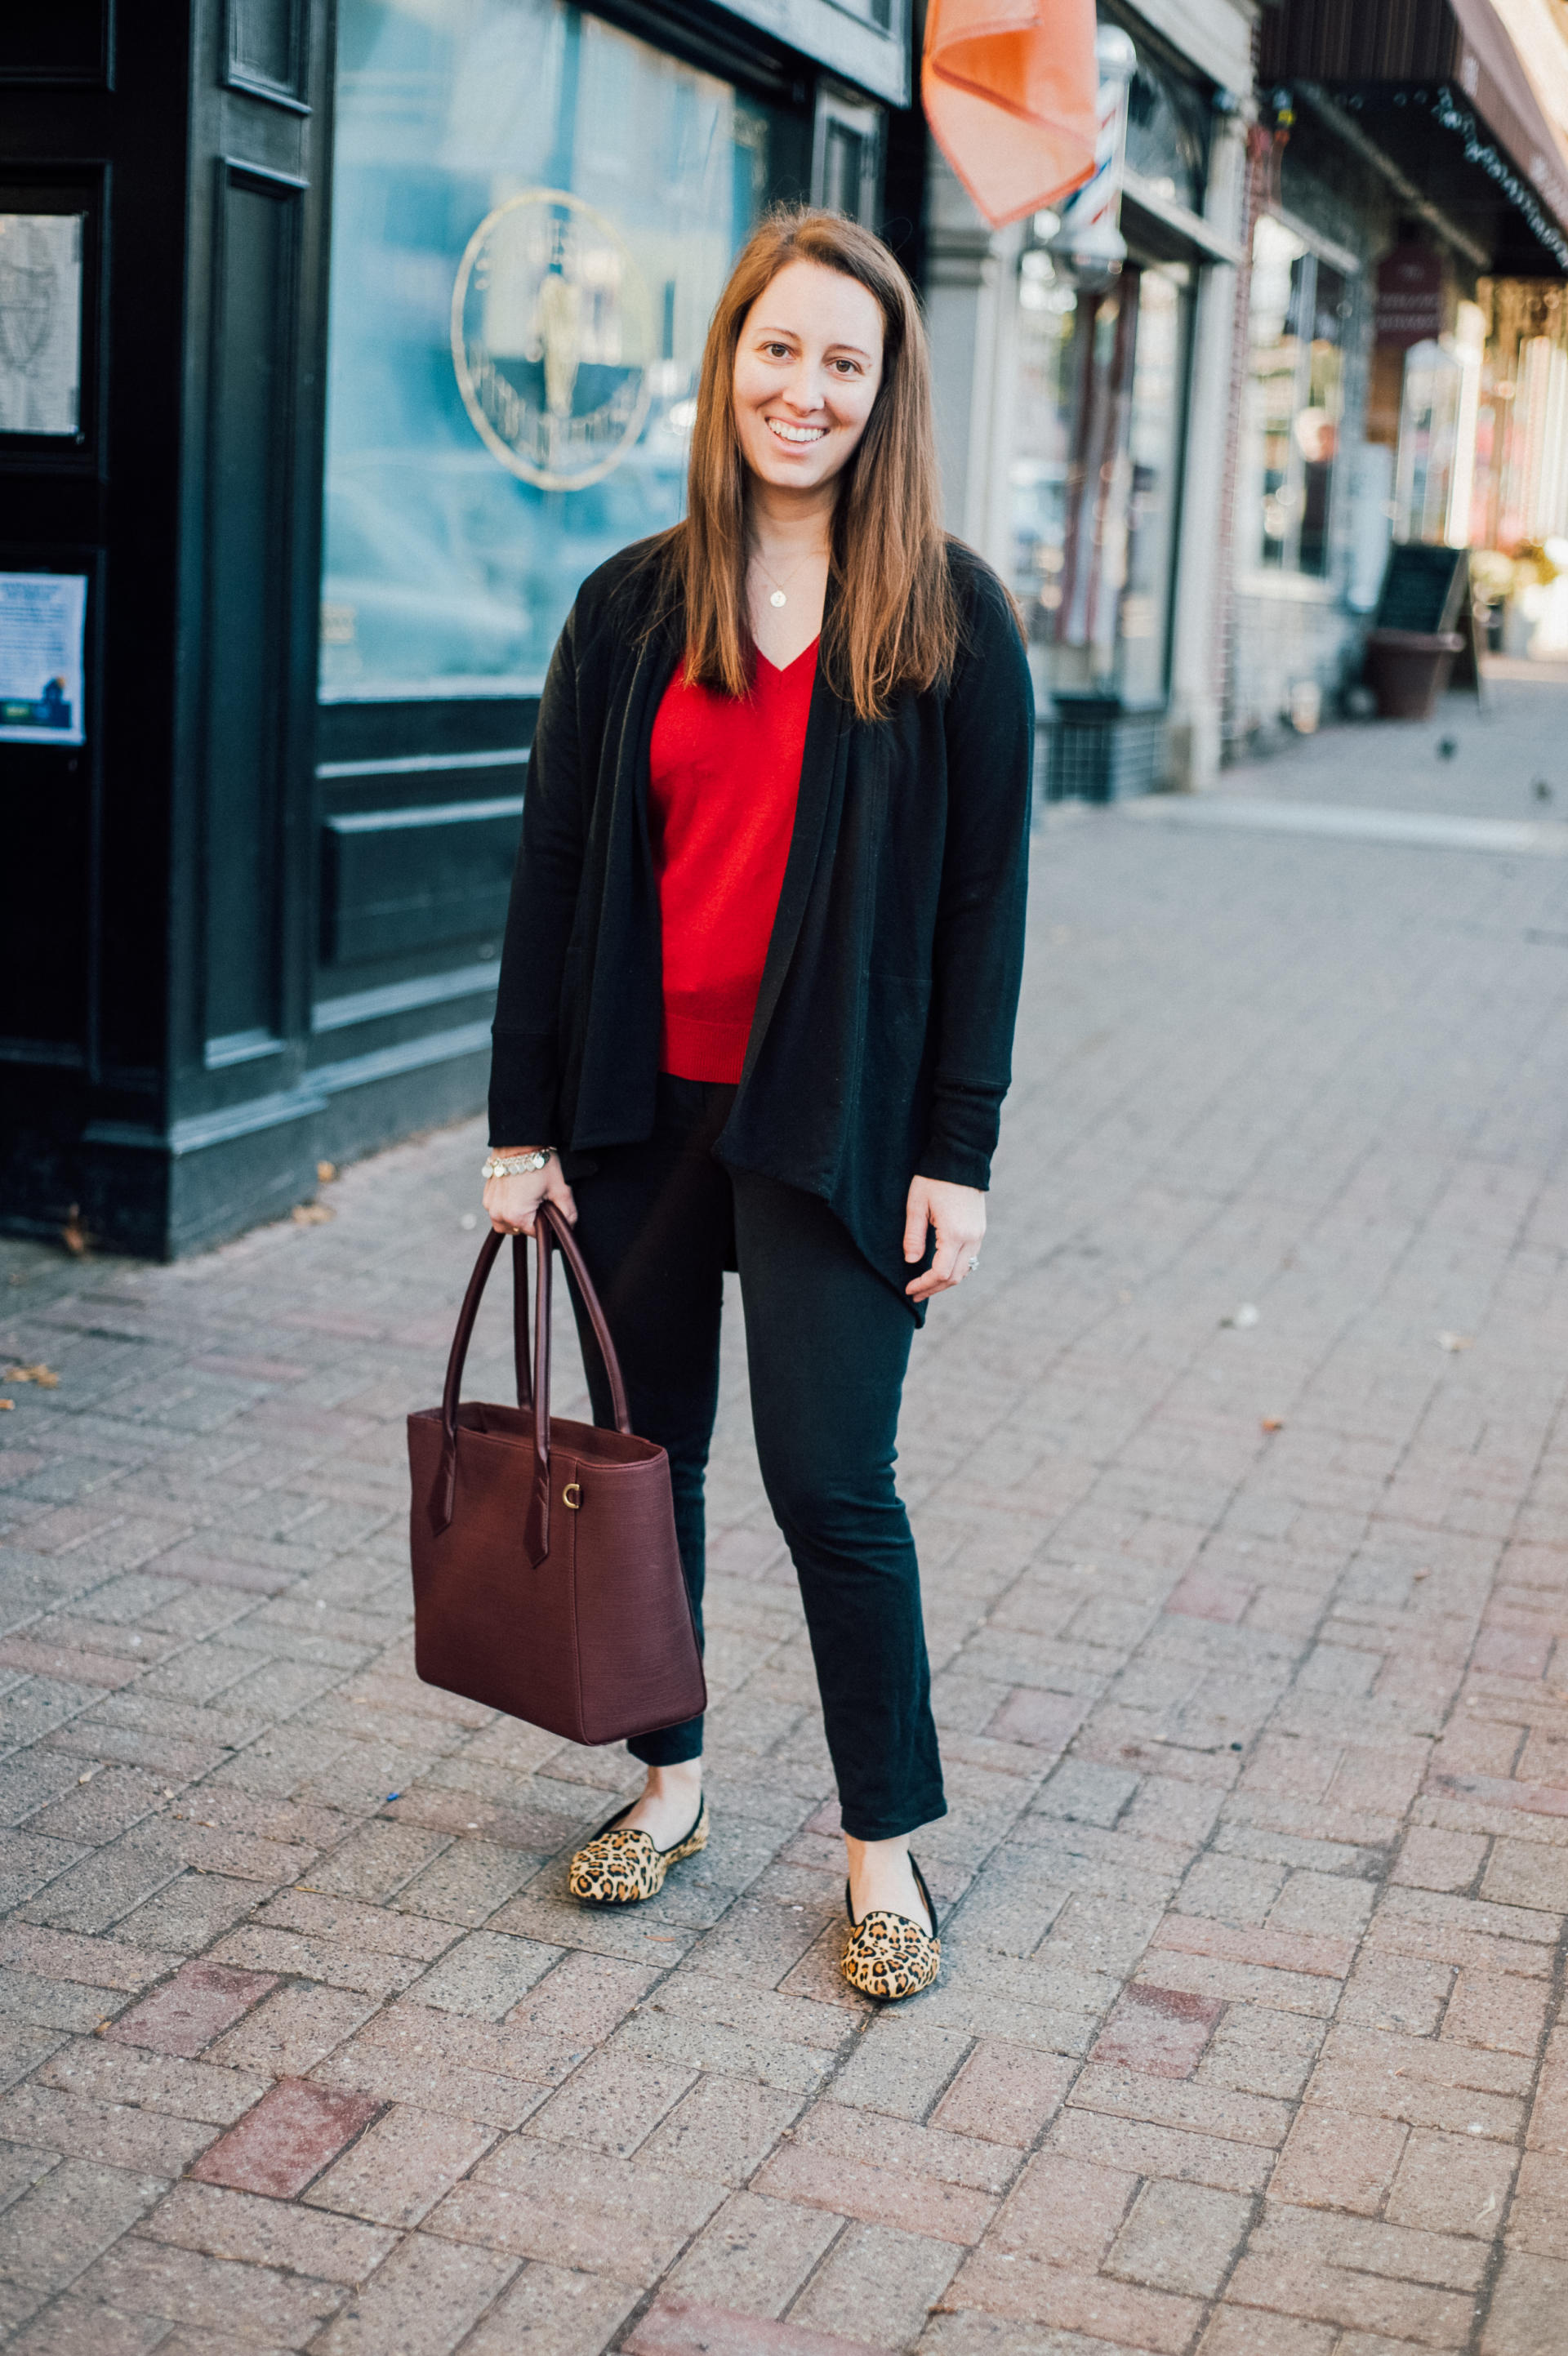 The Valentine's Day Lawyer with Birdies Slippers by popular New Jersey style blogger What's For Dinner Esq.